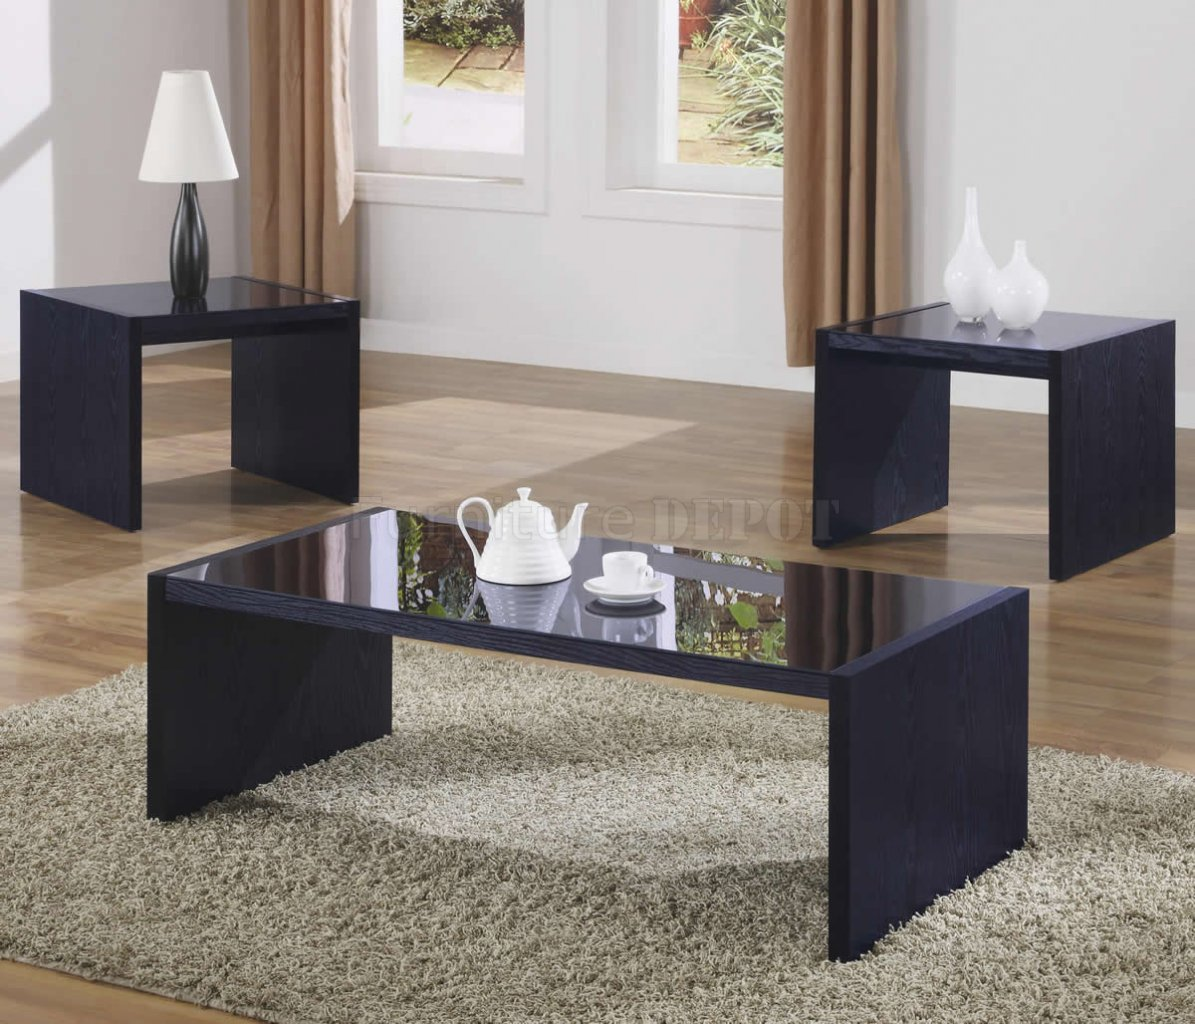 Black-Leather-Coffee-Table-Ottoman-the-largest-as-a-coffee-table-or-group-them-for-a-graphic-display (Image 8 of 10)